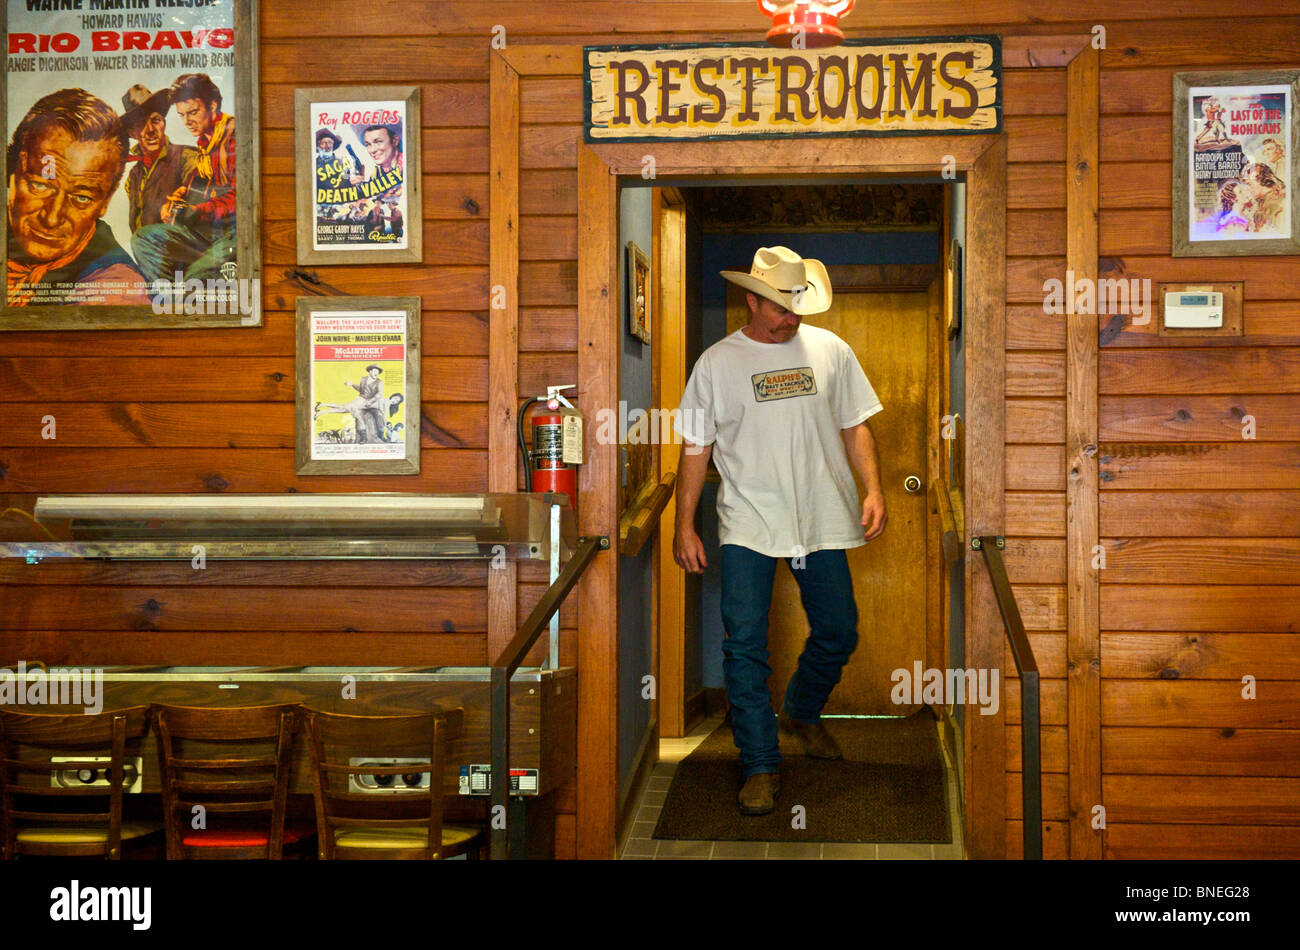 John Wayne poster in a Spanish restaurant in Hill country, Texas, USA - Stock Image